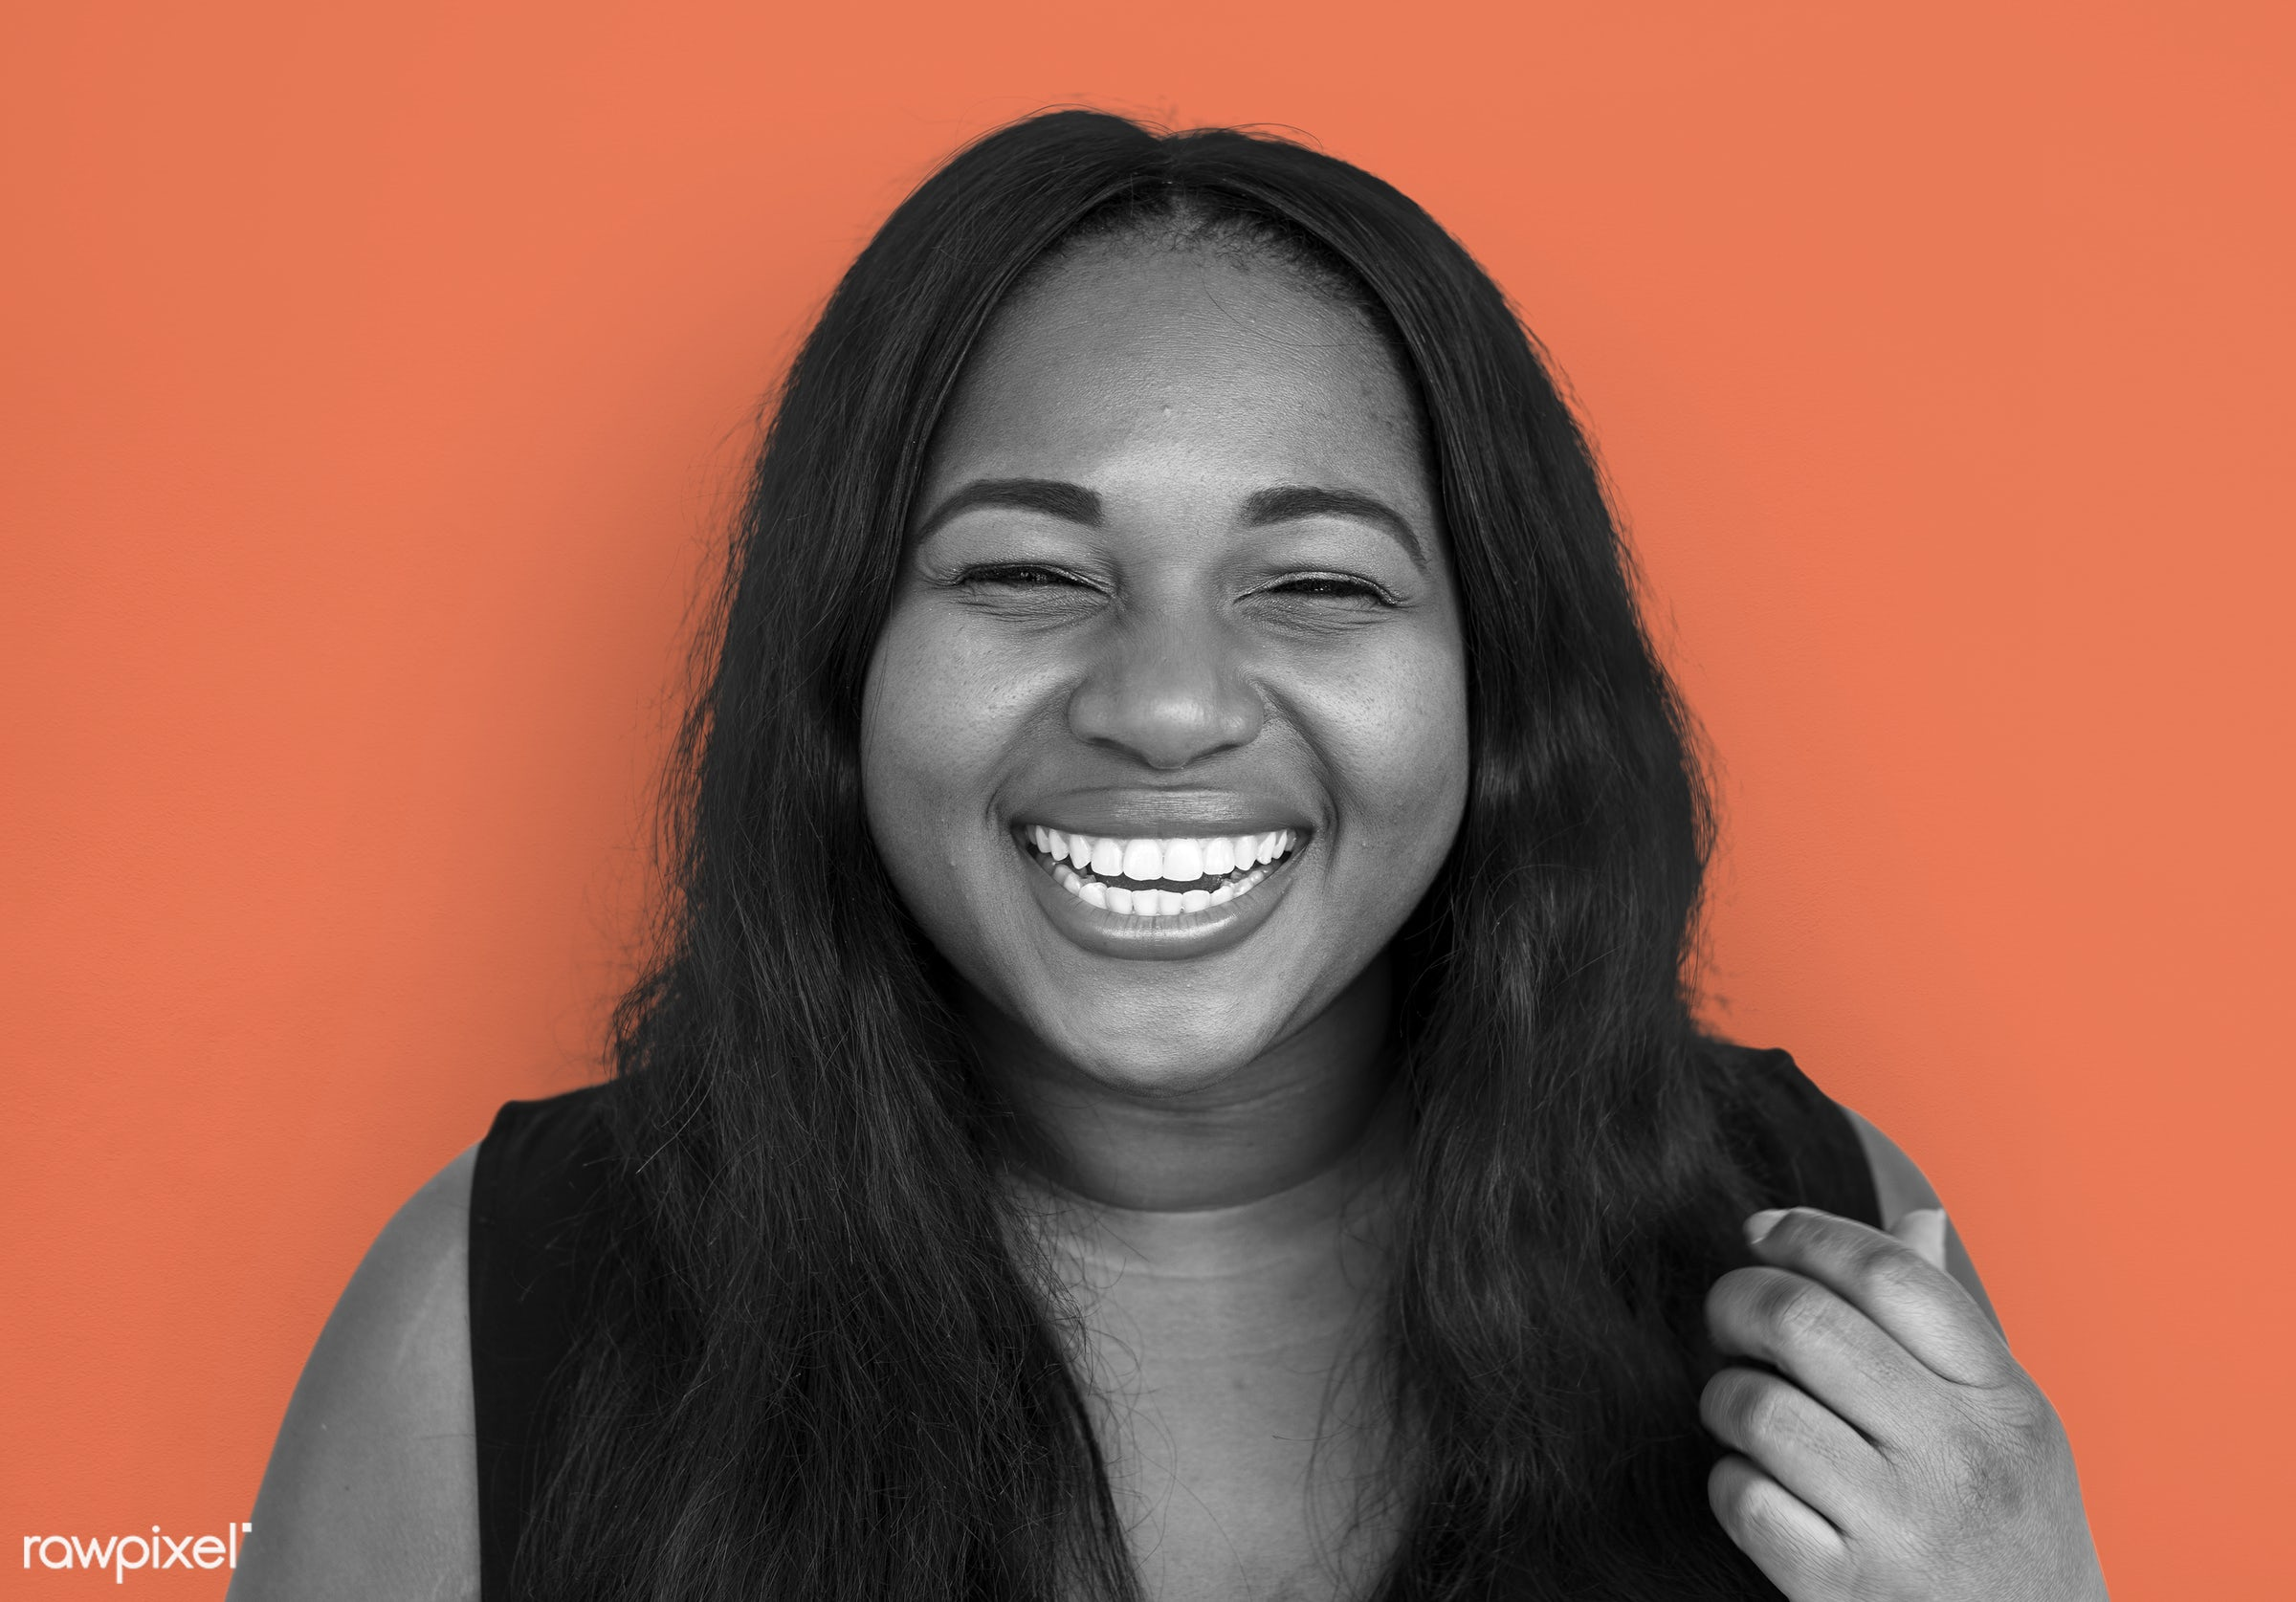 studio, expression, person, people, woman, smile, cheerful, smiling, orange, african descent, happiness, portrait, emotion,...